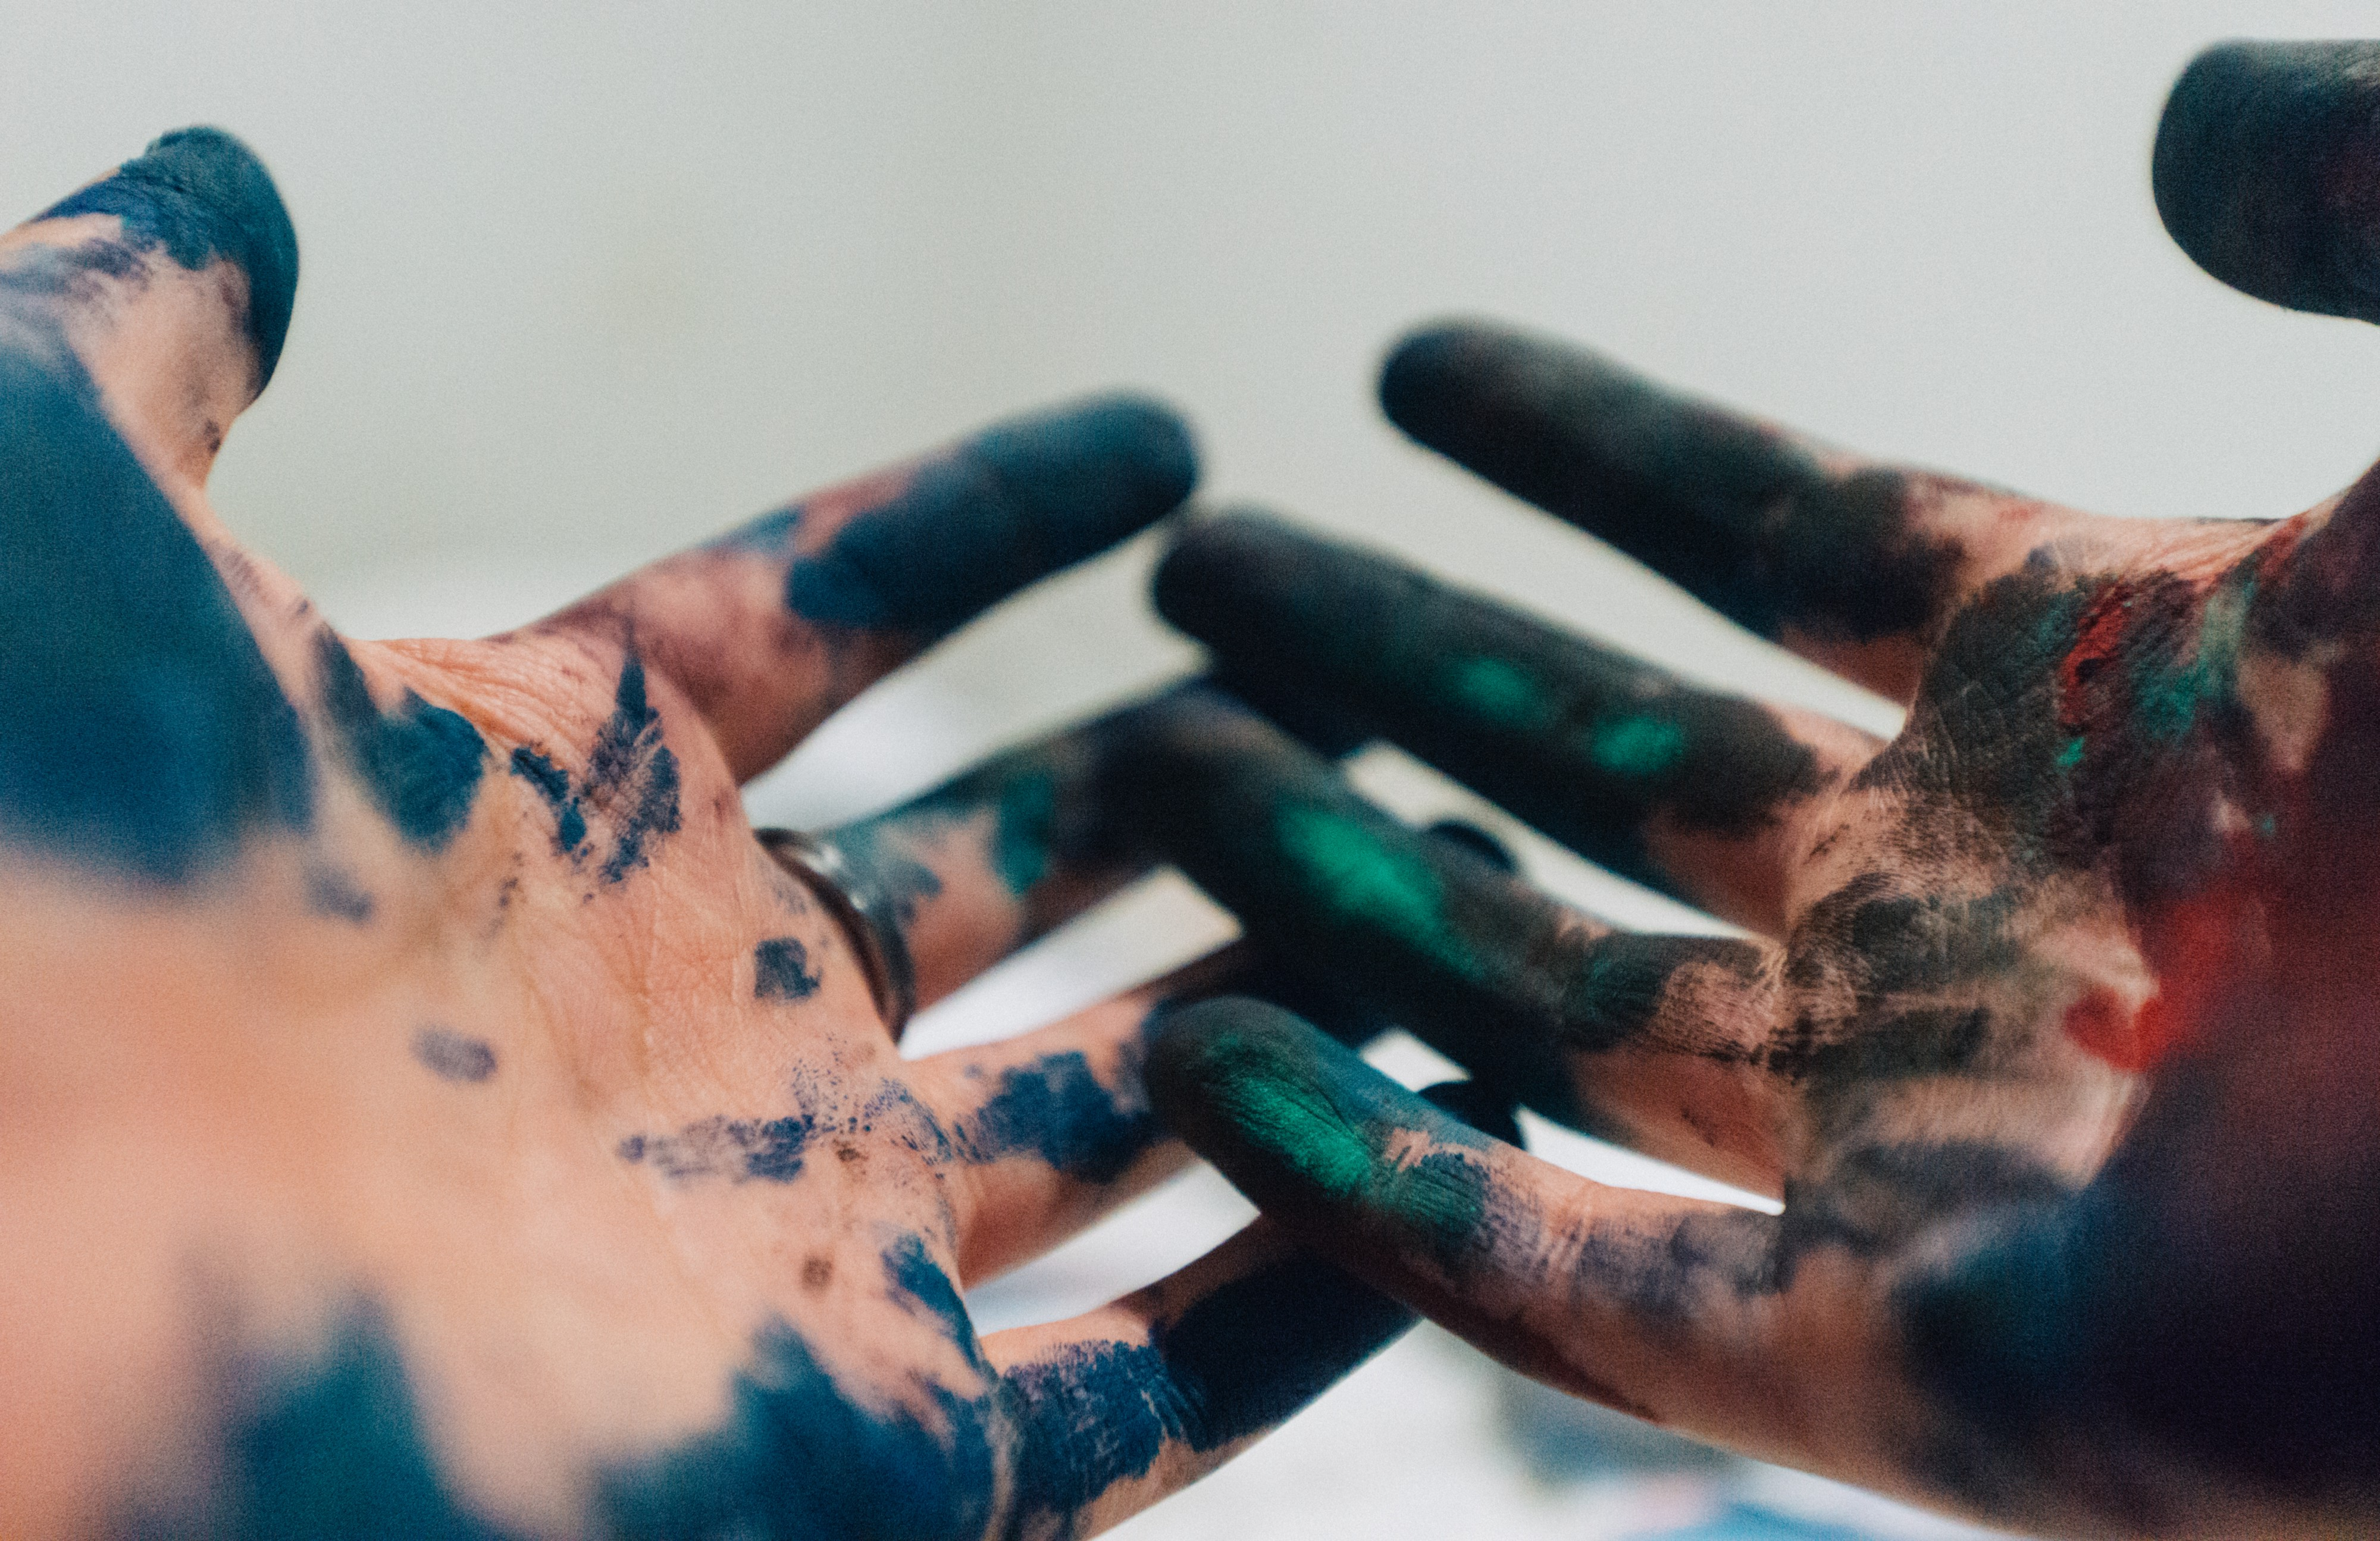 Two hands, palms up, covered in dark blue, black, and green pigments.